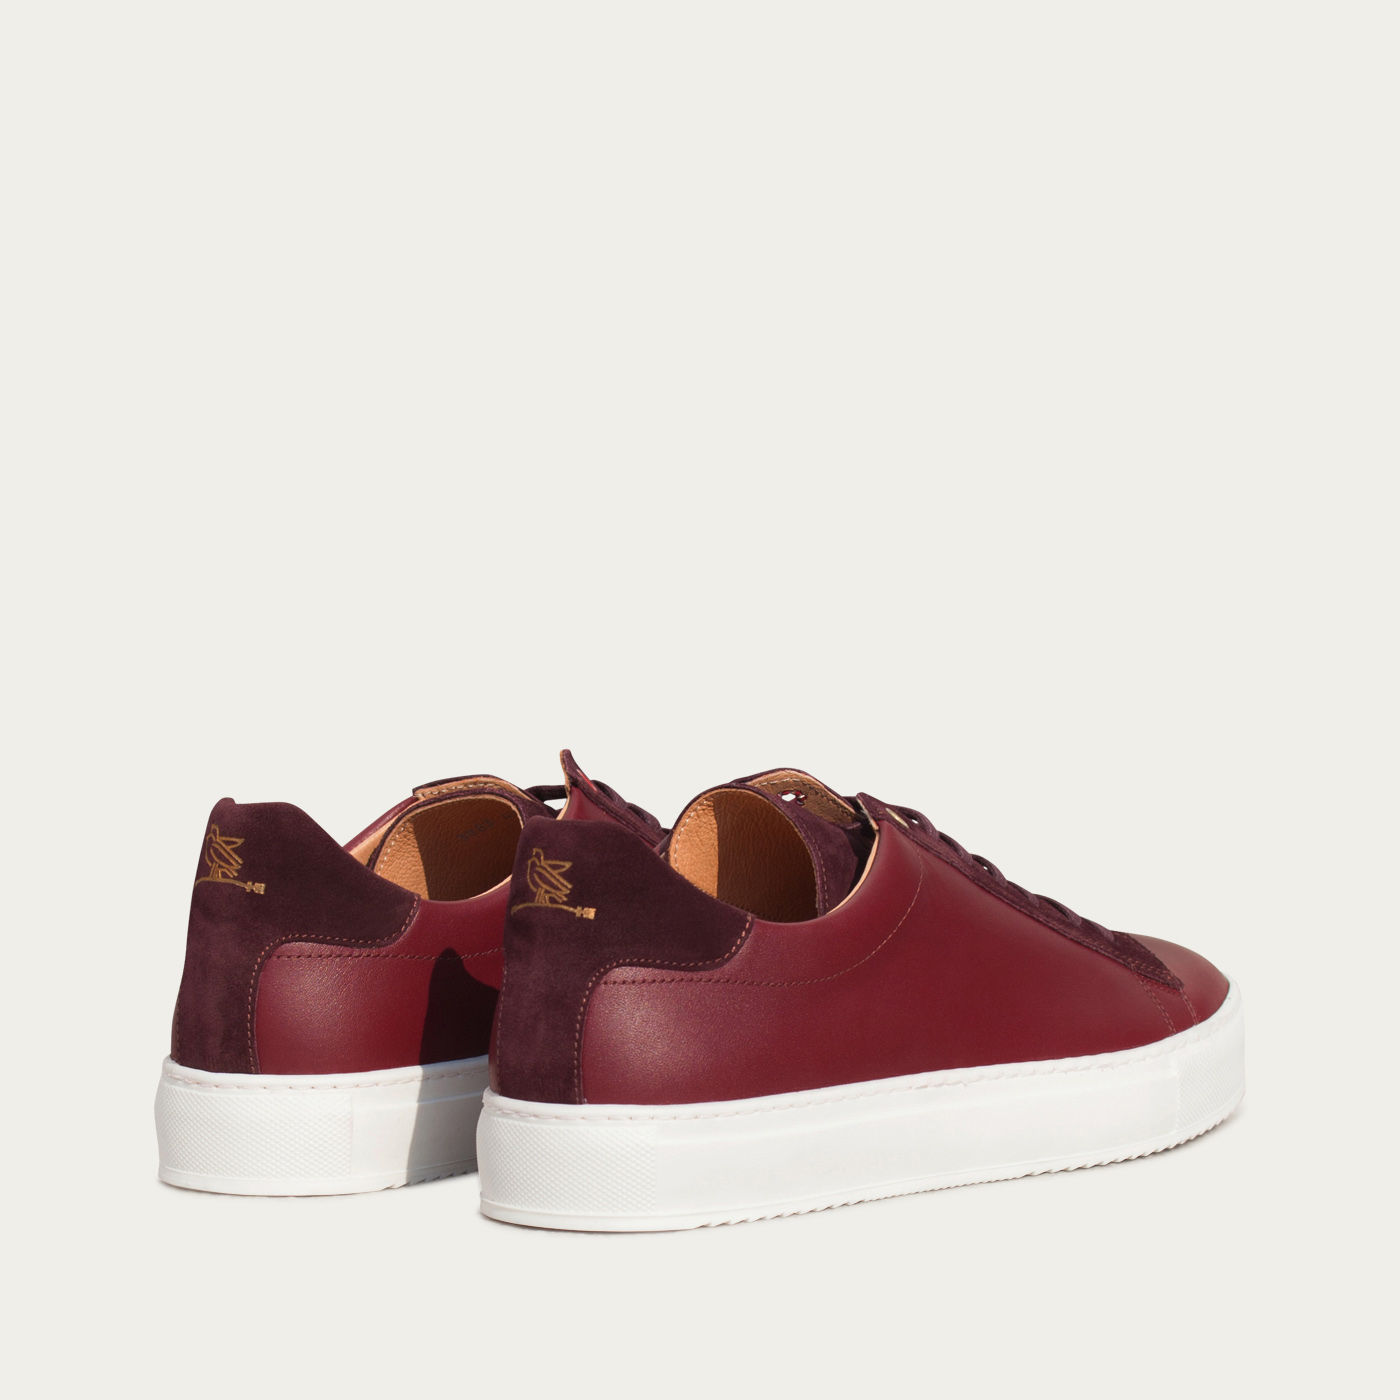 Burgundy Leather Taranta Sneakers    3